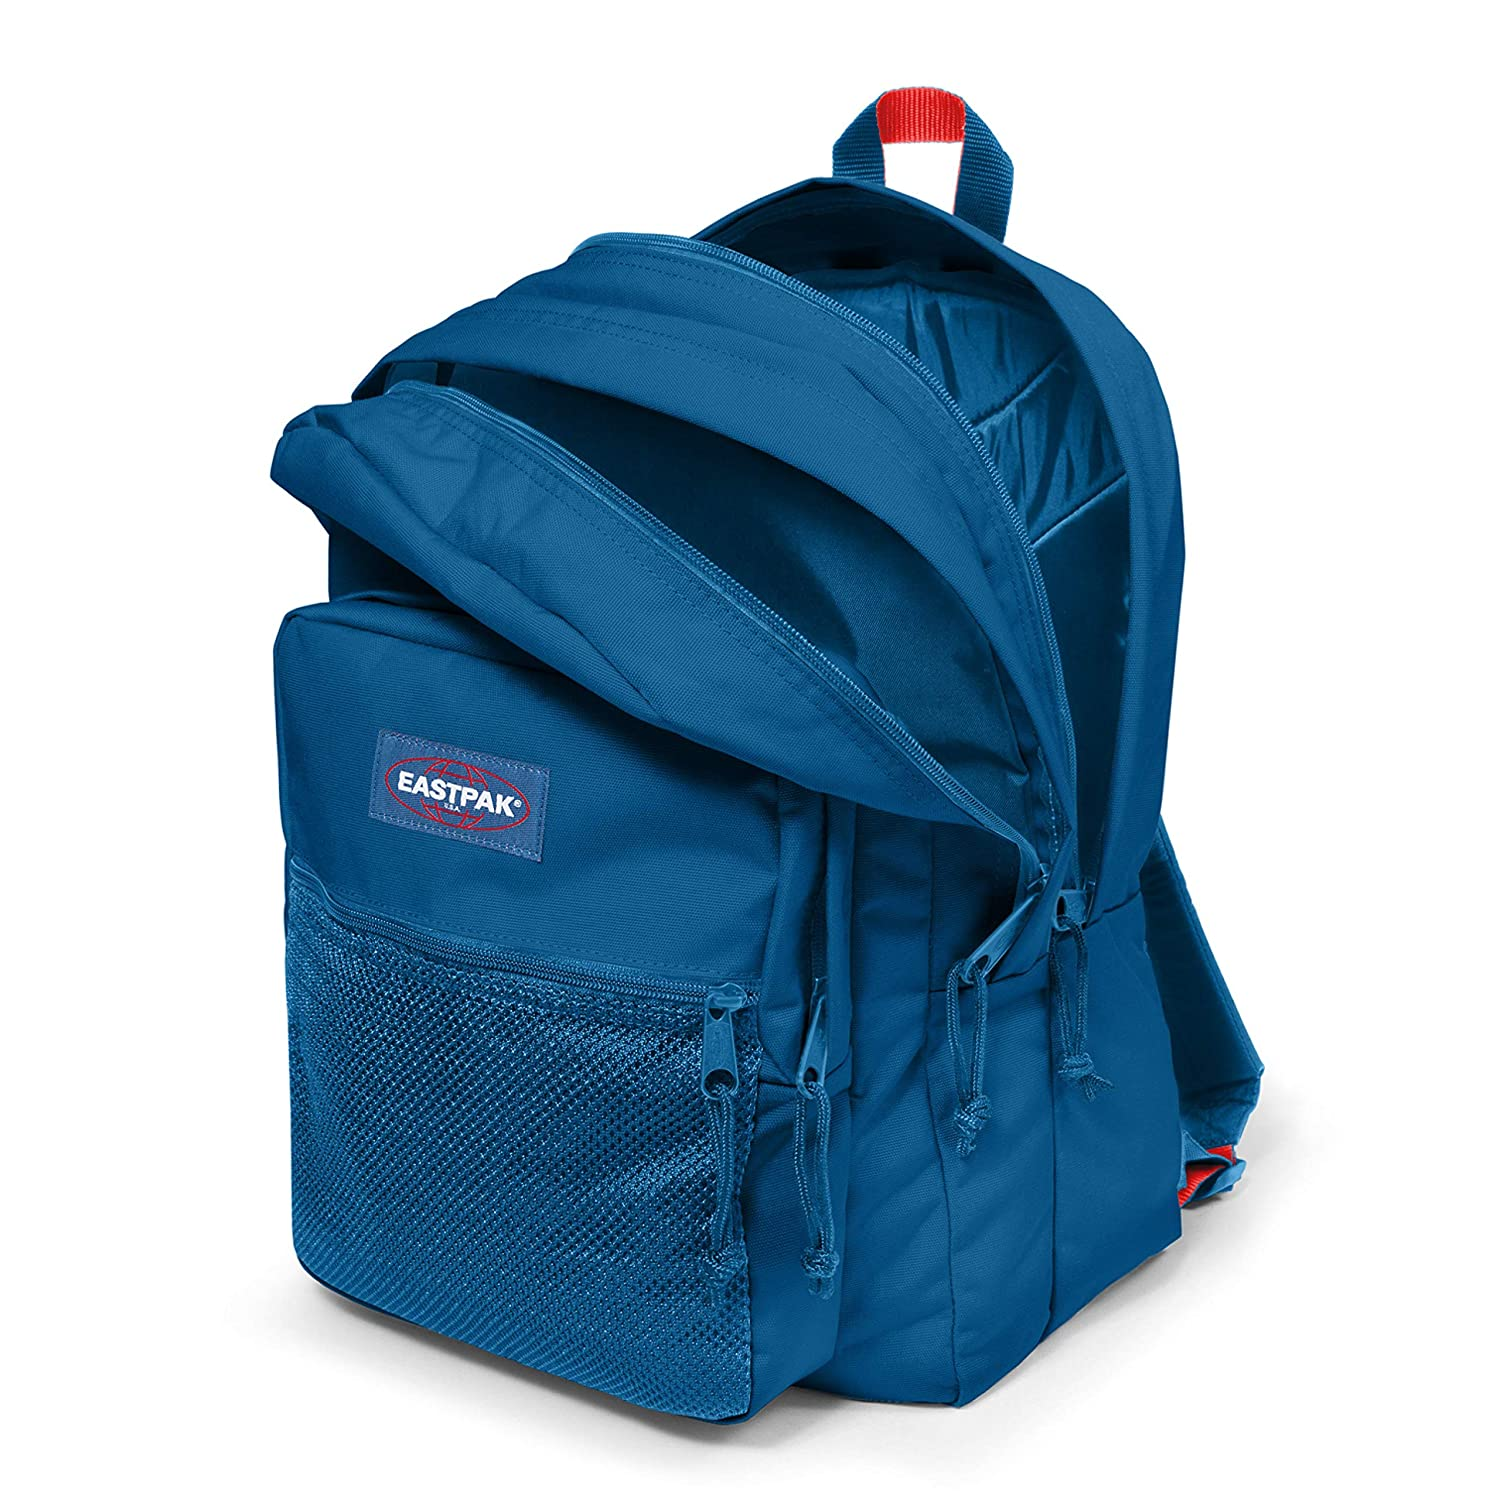 Pinnacle Dos Loisir42 Sac À Cm38 Eastpak LitersBleublakout gyIYb76vf